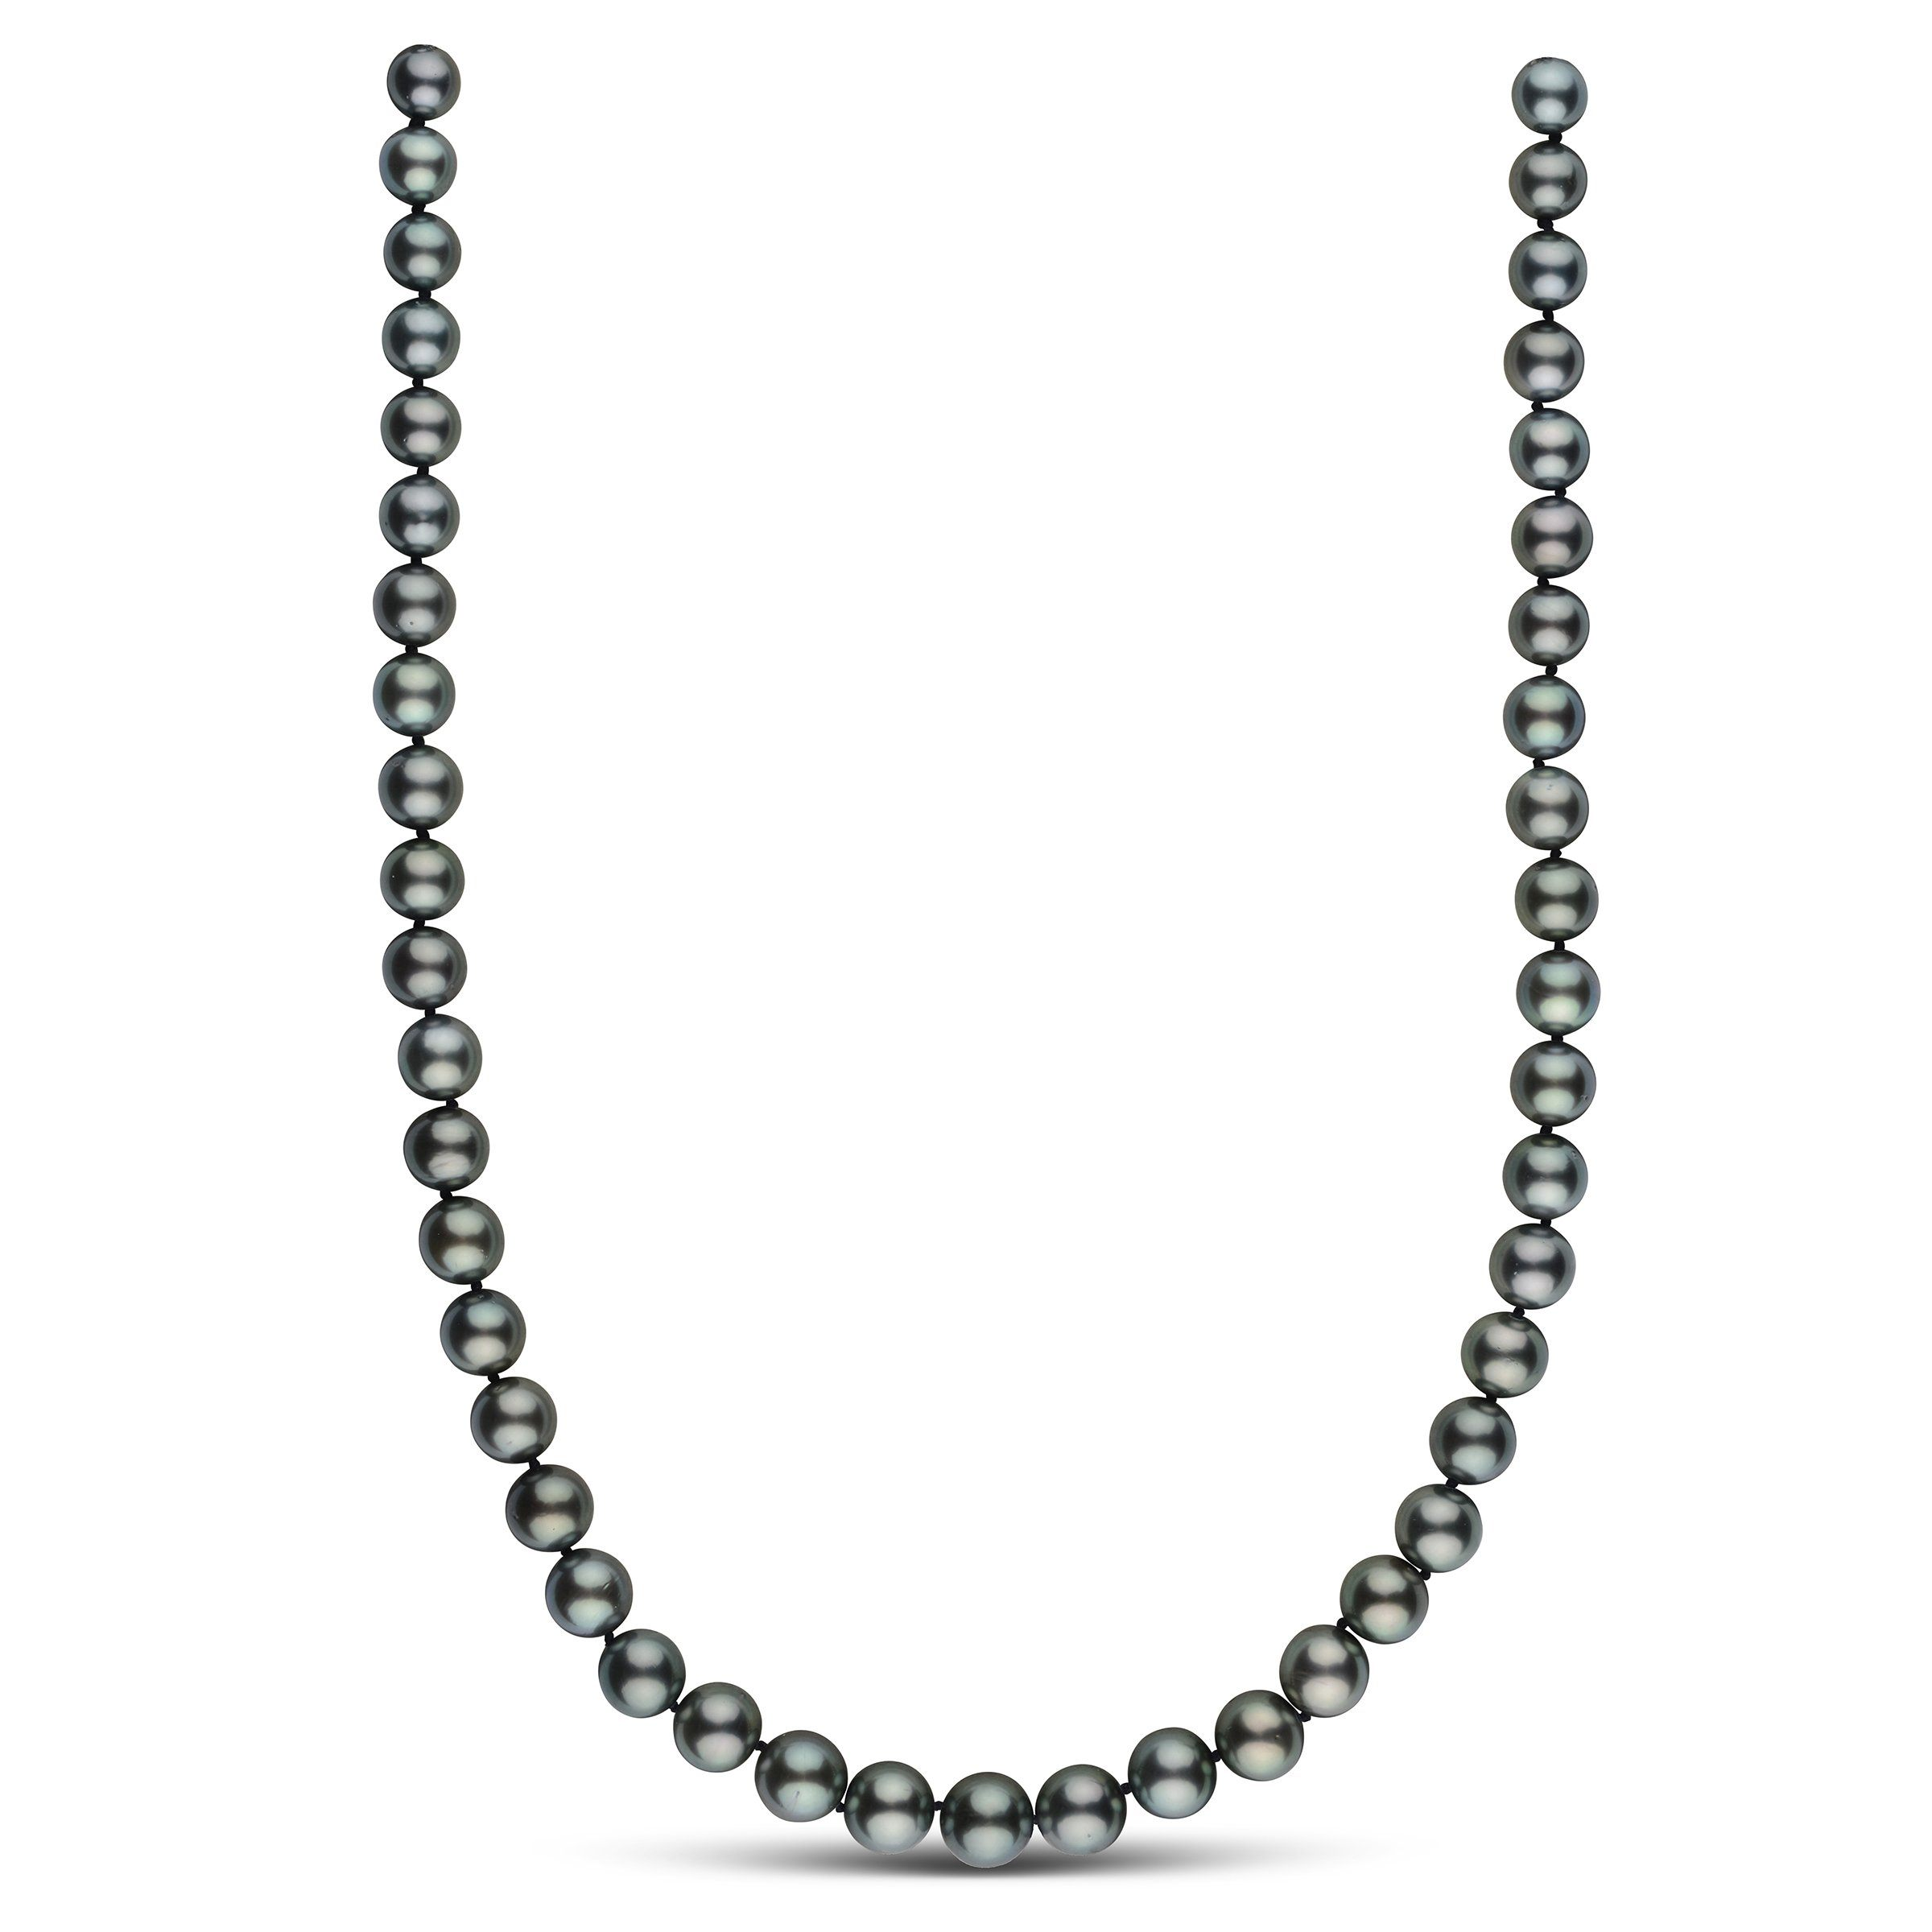 8.2-10.2 mm AA+/AAA Round Tahitian Pearl Necklace